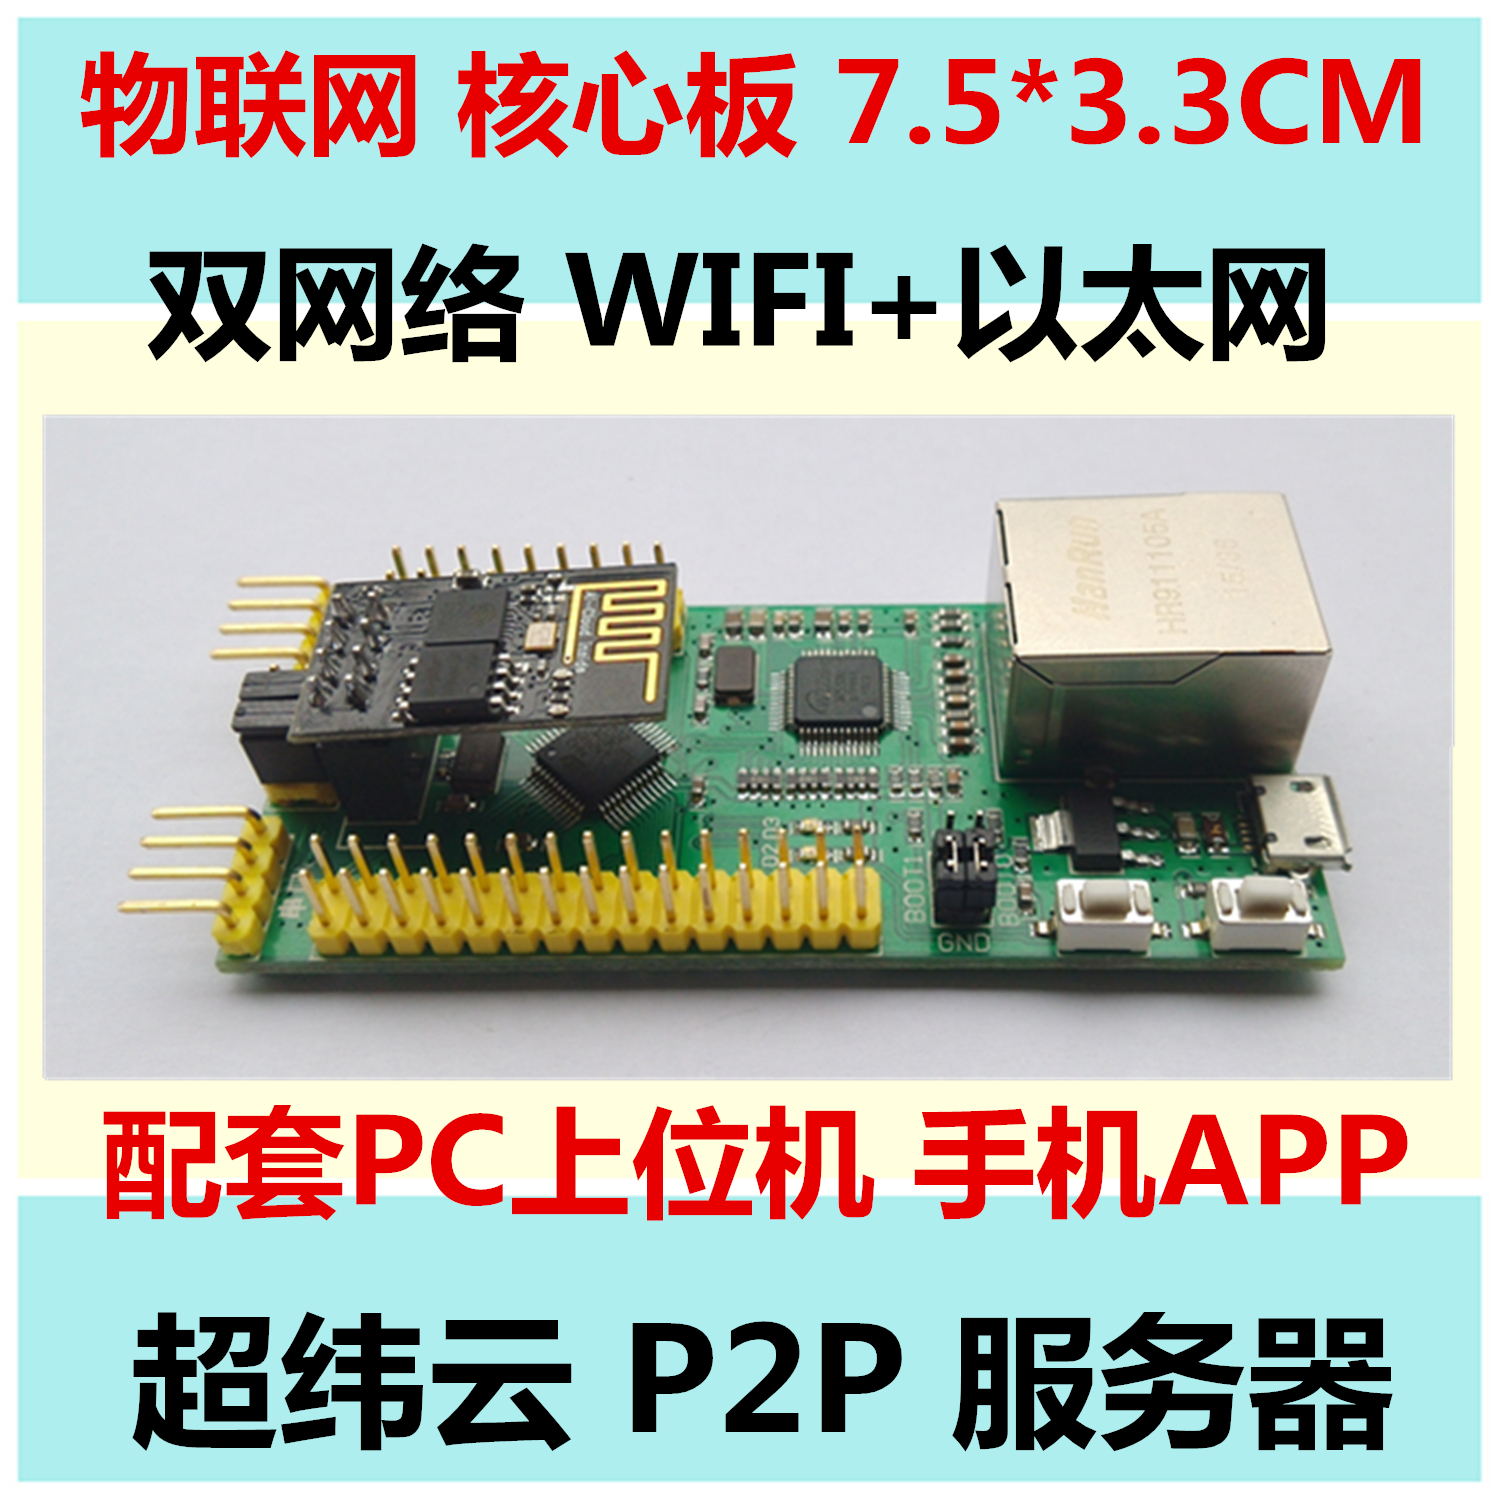 wisdom stm32f407 embedded development board isolation rc522 can 485 232 internet of things Internet of things WIFI dual network STM32 Ethernet development board ESP8266 W5500 core board